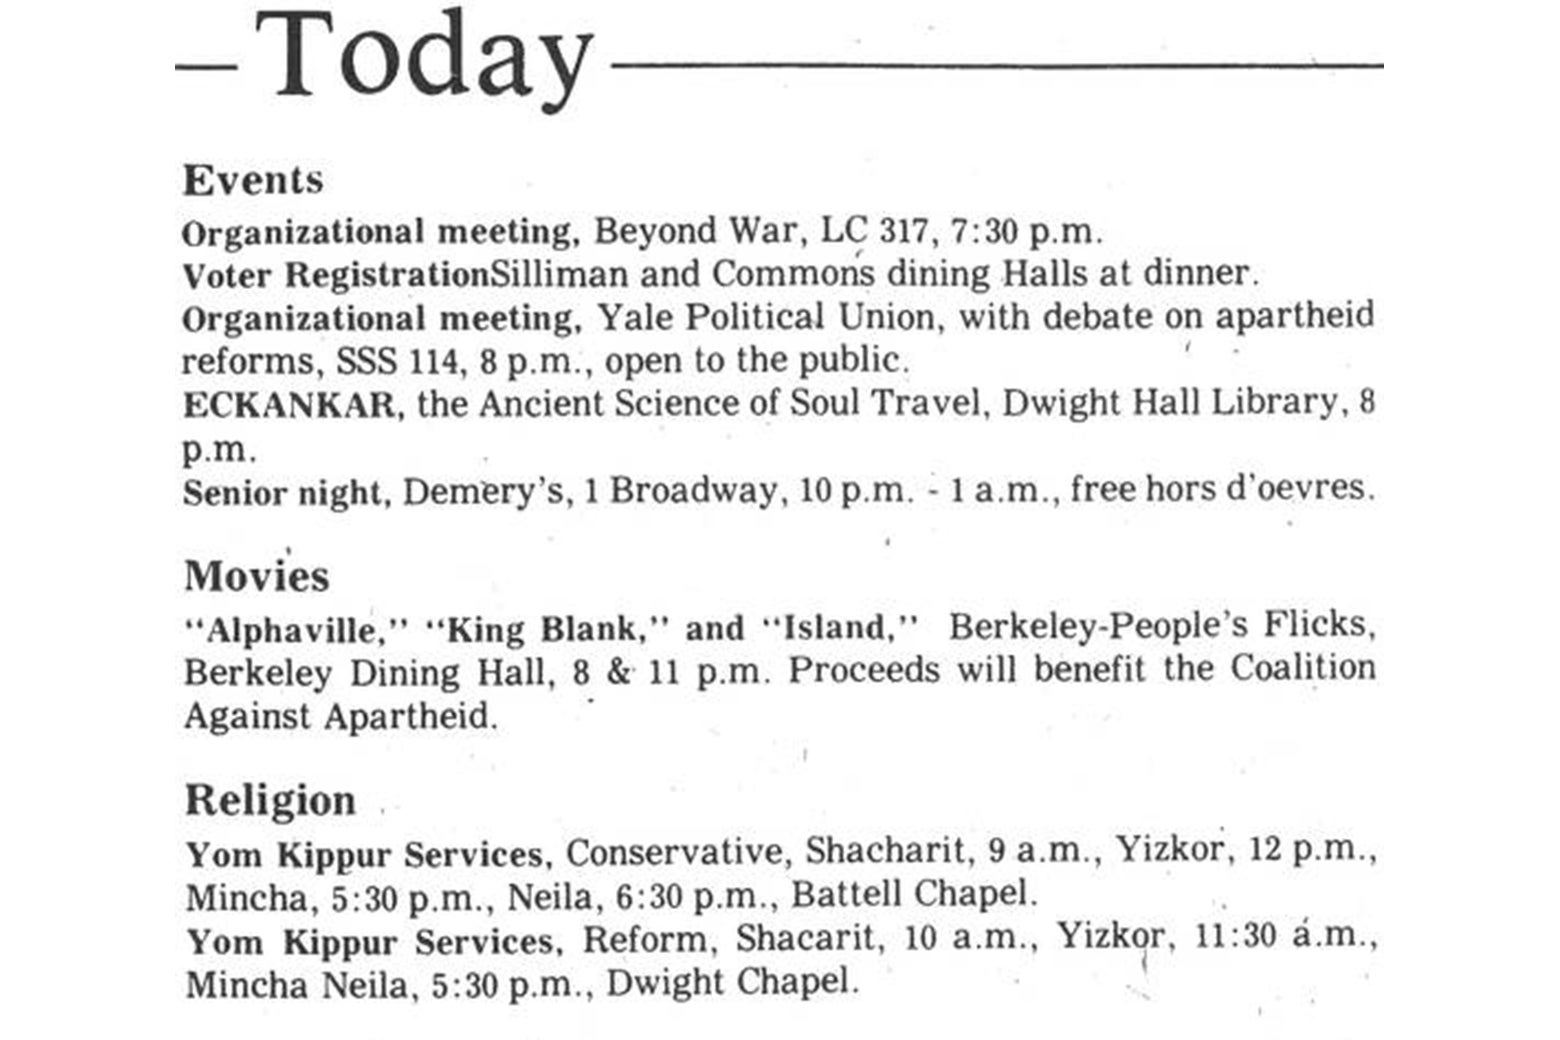 A list of campus events from the Yale Daily News, including hor d'ouevres at Demery's.